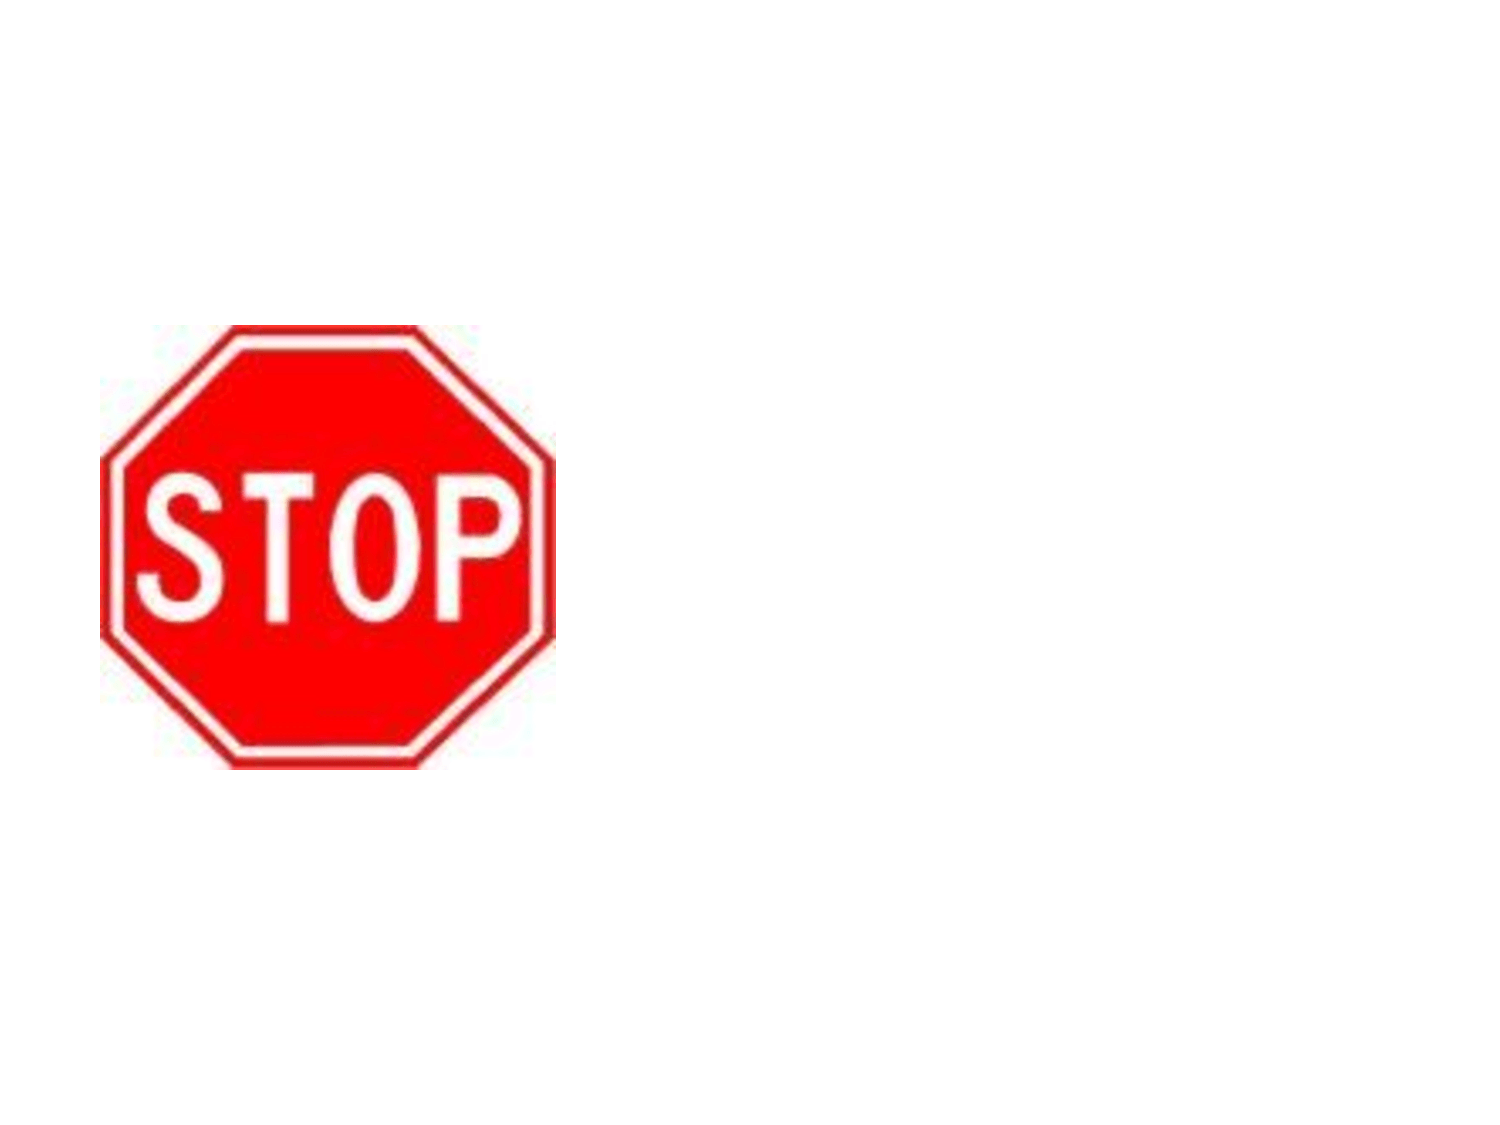 Free Stop Sign Template Printable, Download Free Clip Art, Free